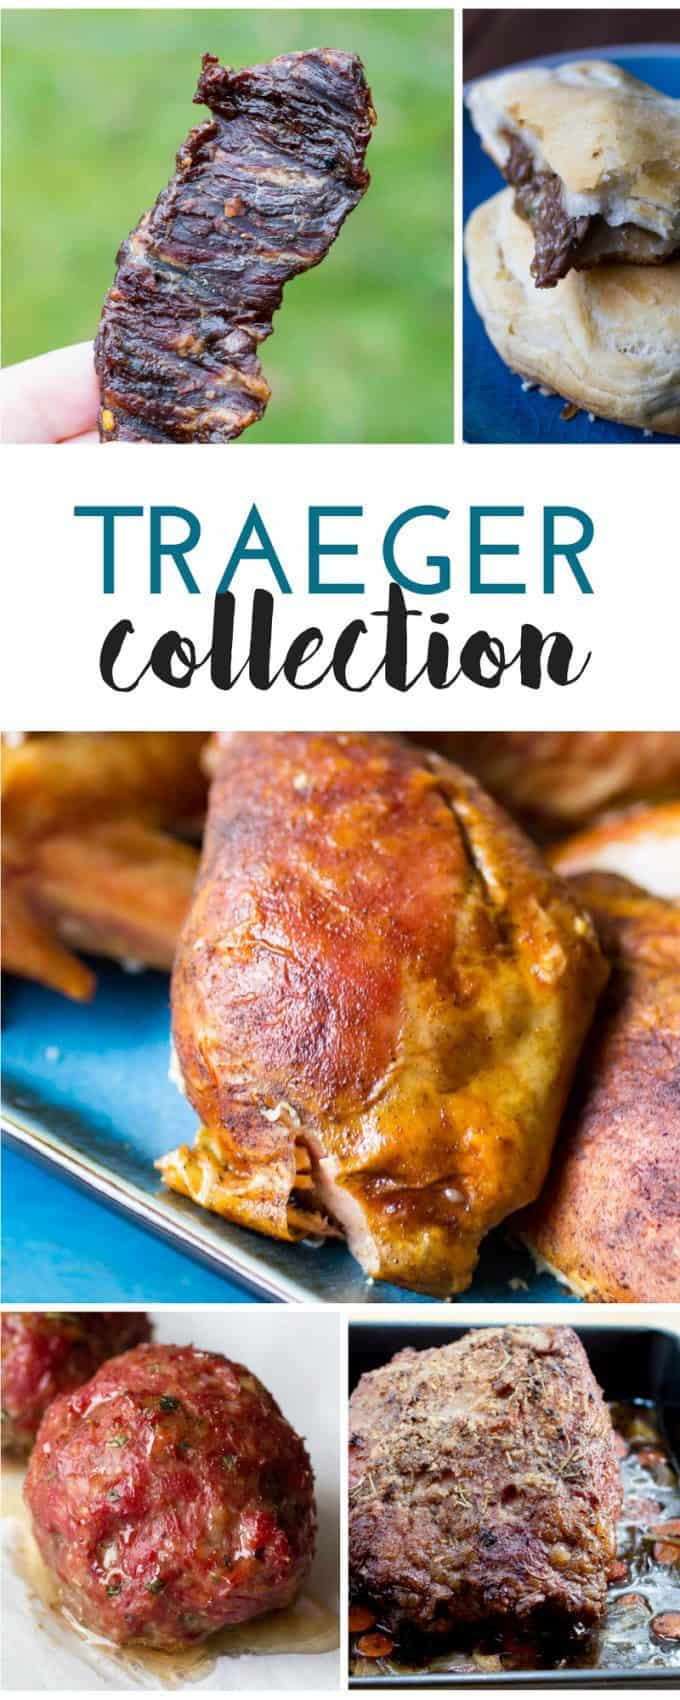 Traeger Recipe Collection